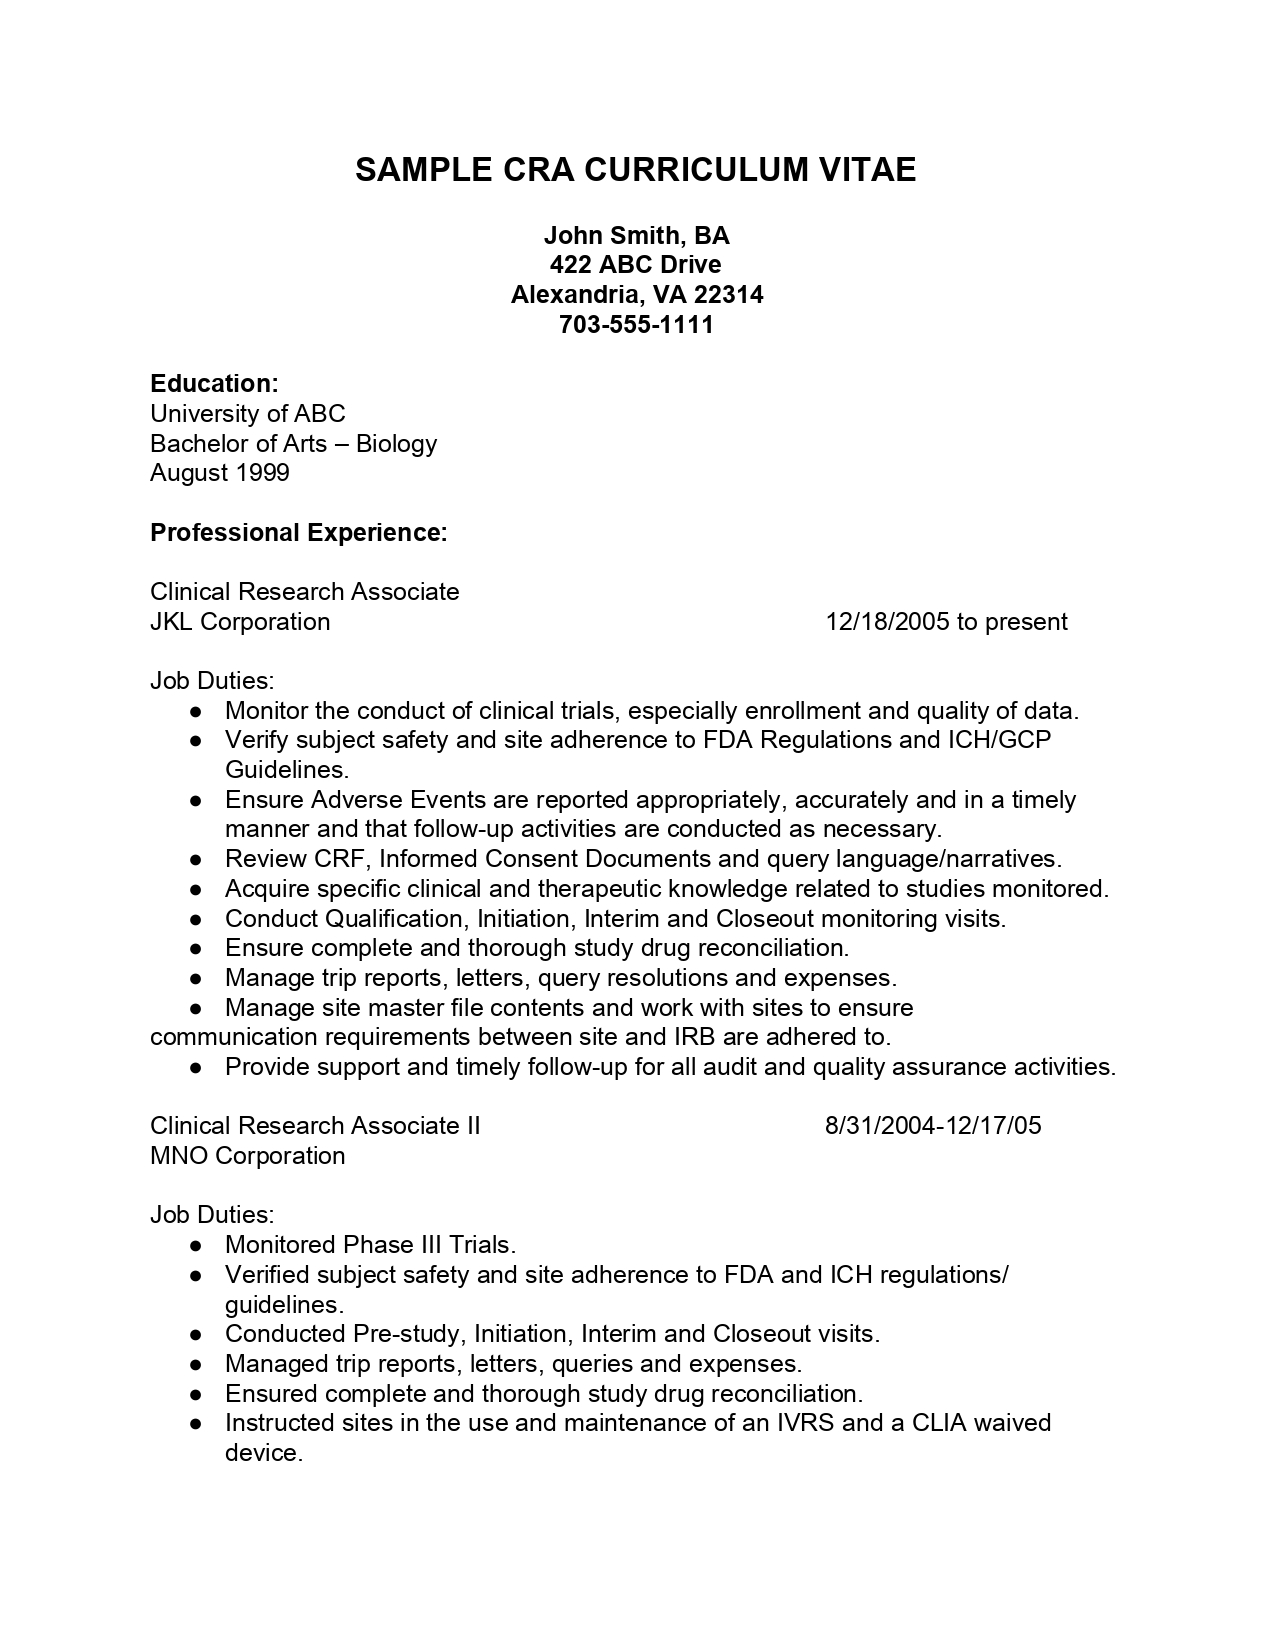 clinical research assistant resume google docs templates associate brainstorming Resume Clinical Research Associate Resume